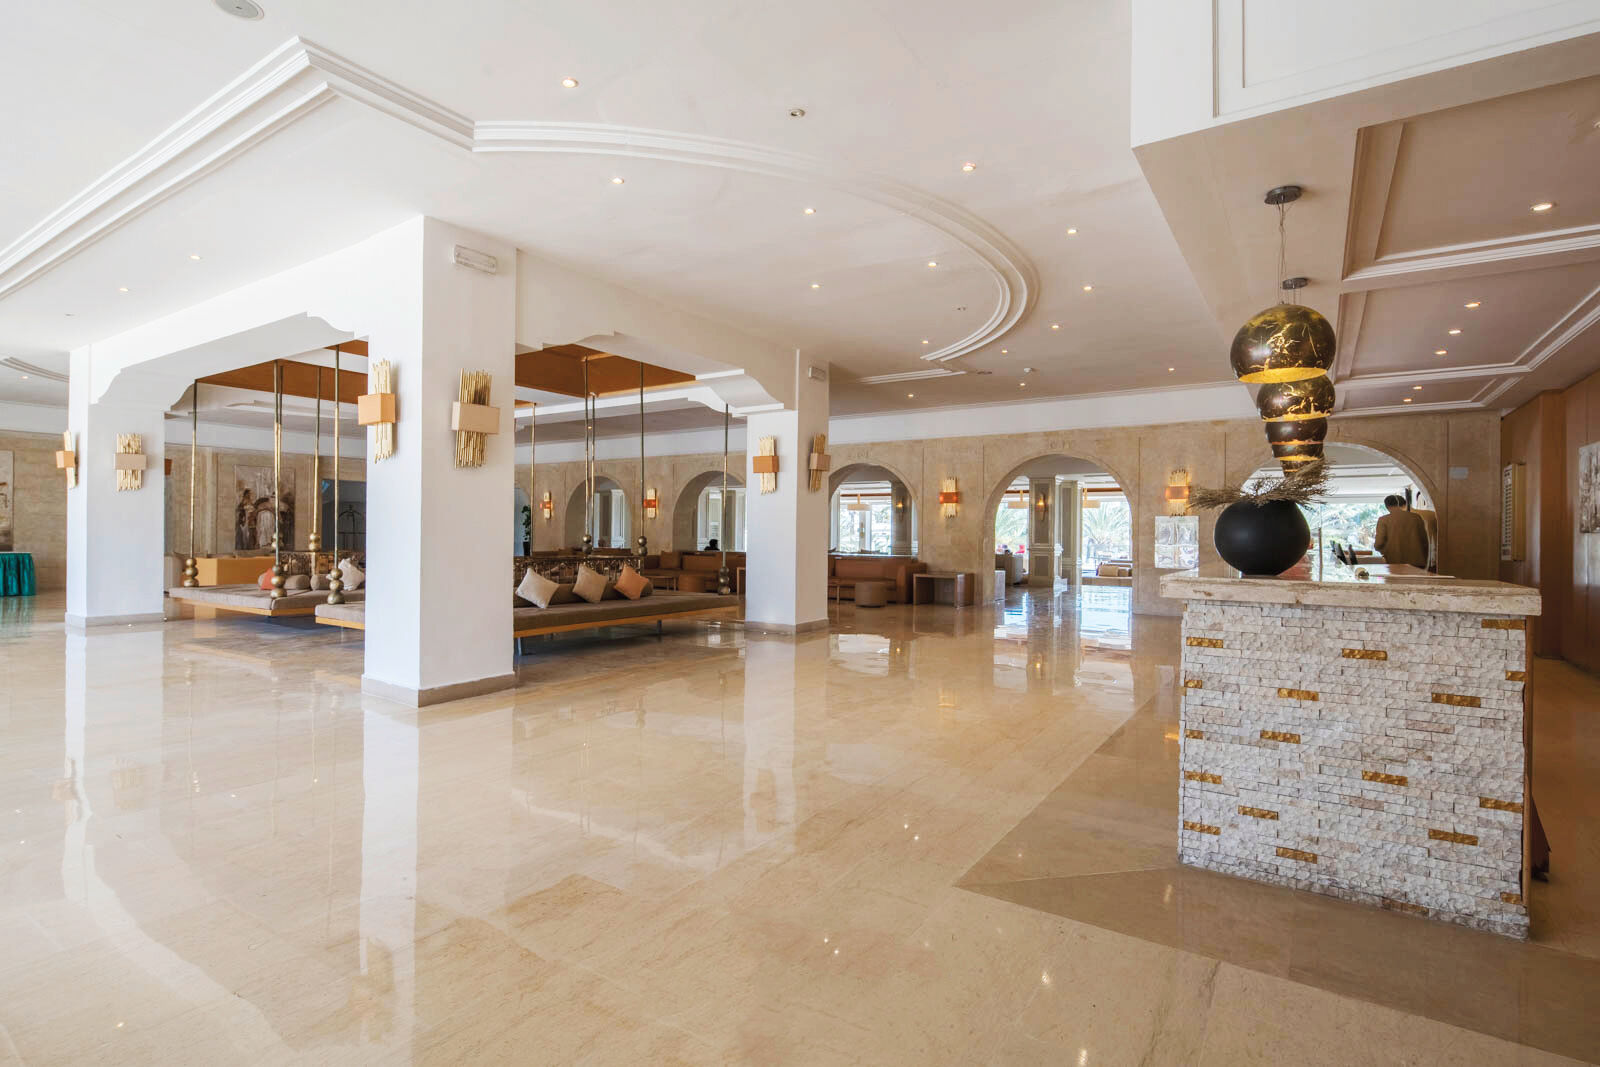 Tunisie - Sousse - Club FTI Voyages Occidental Sousse 4*